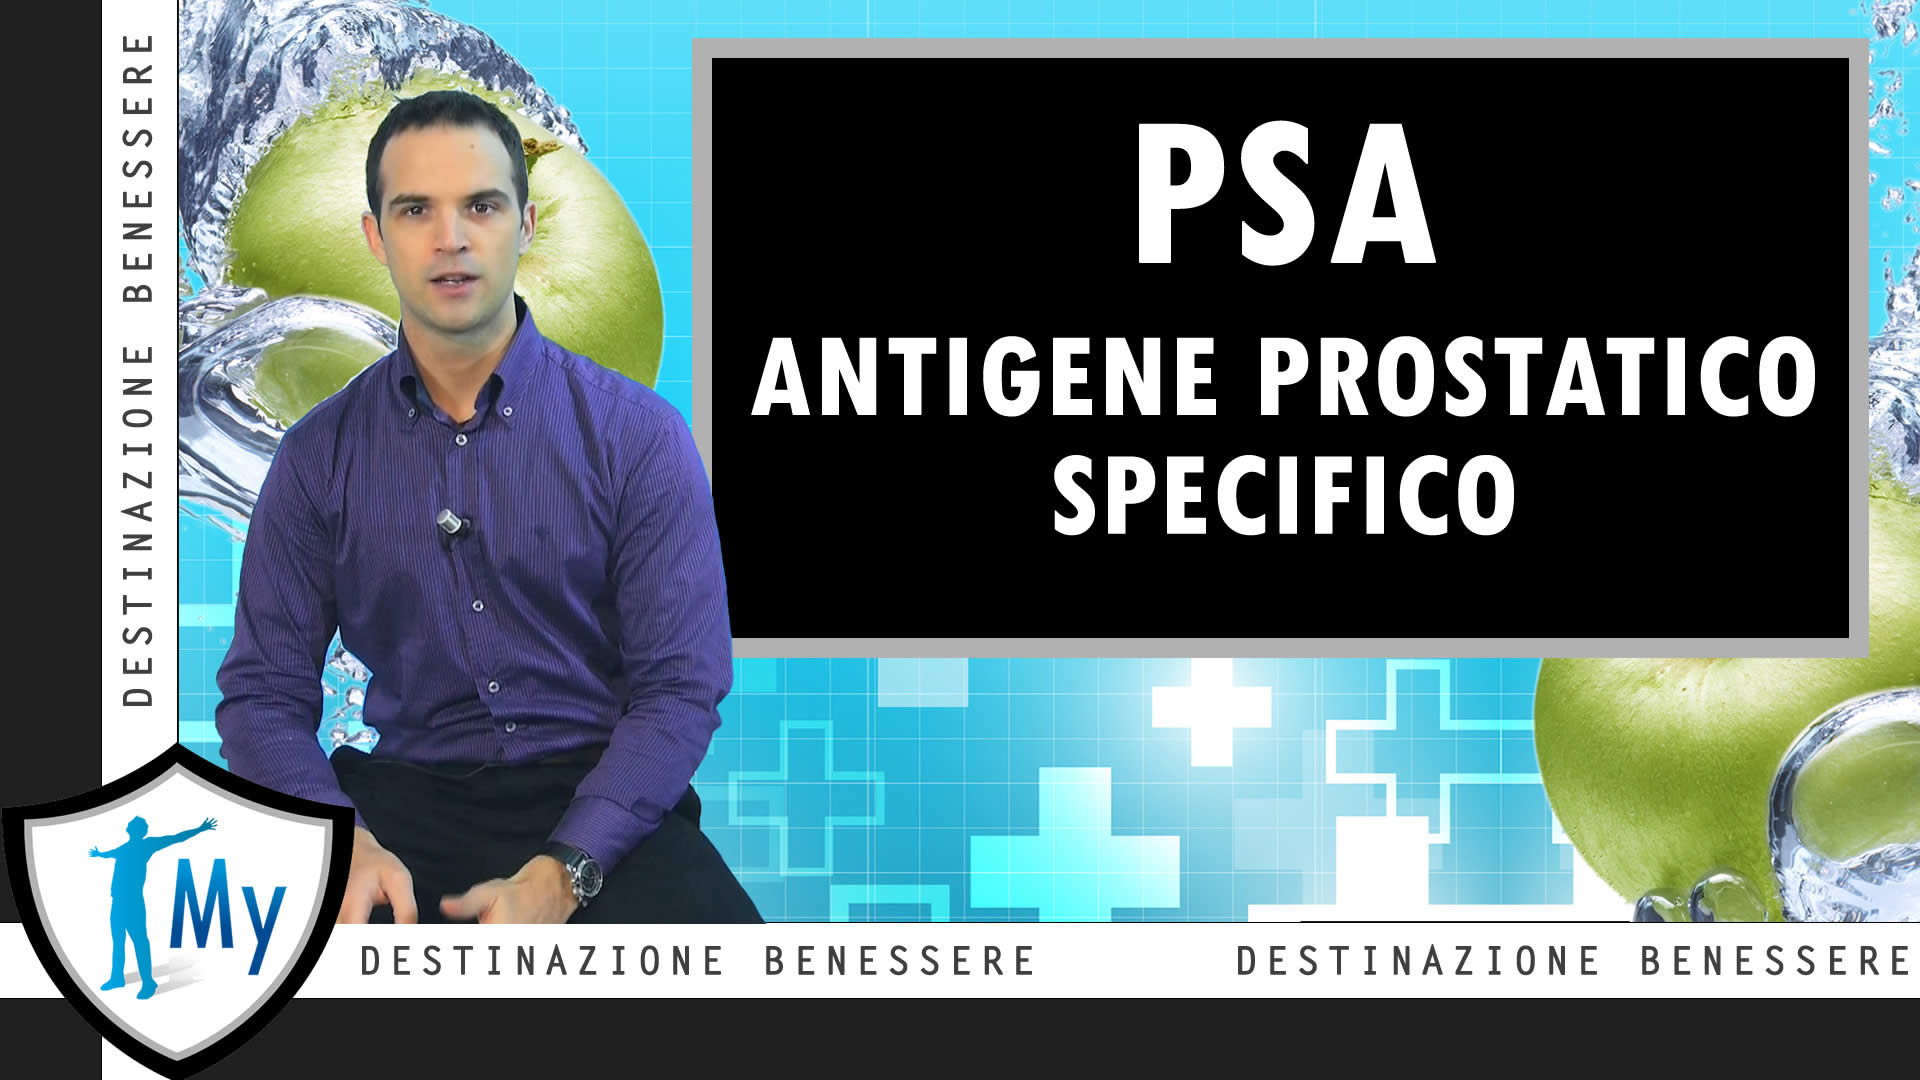 esame antig. prostatico specifico totale 4 18 3